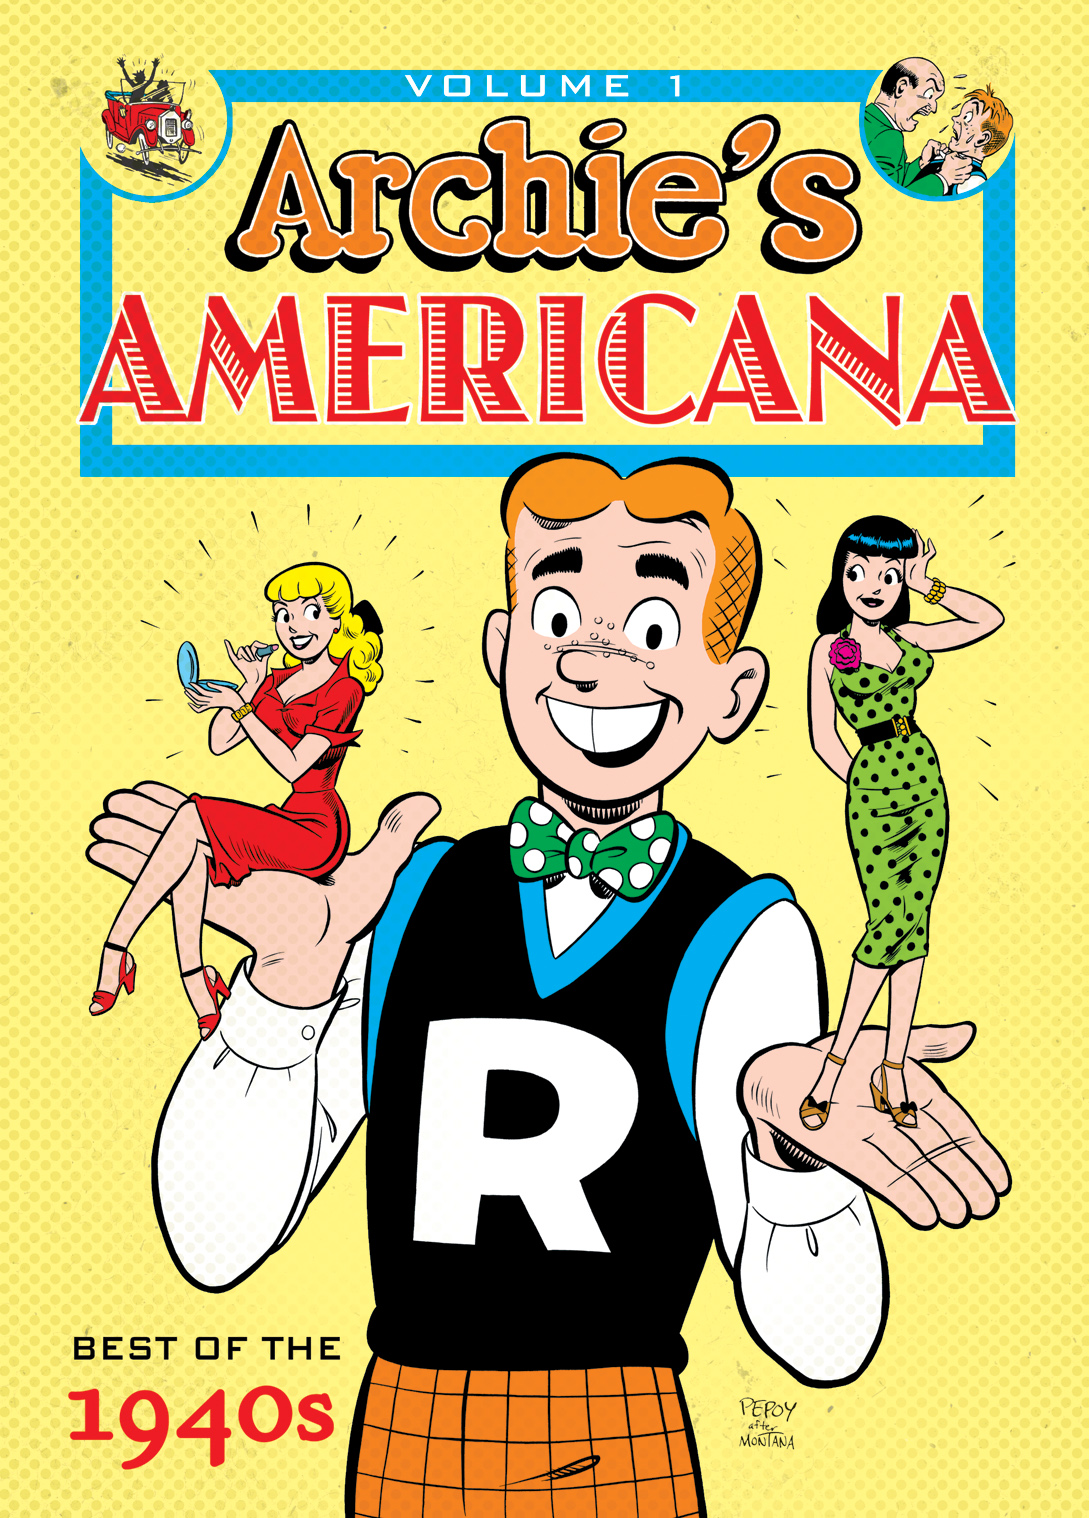 Archie Americana Best of 1940s